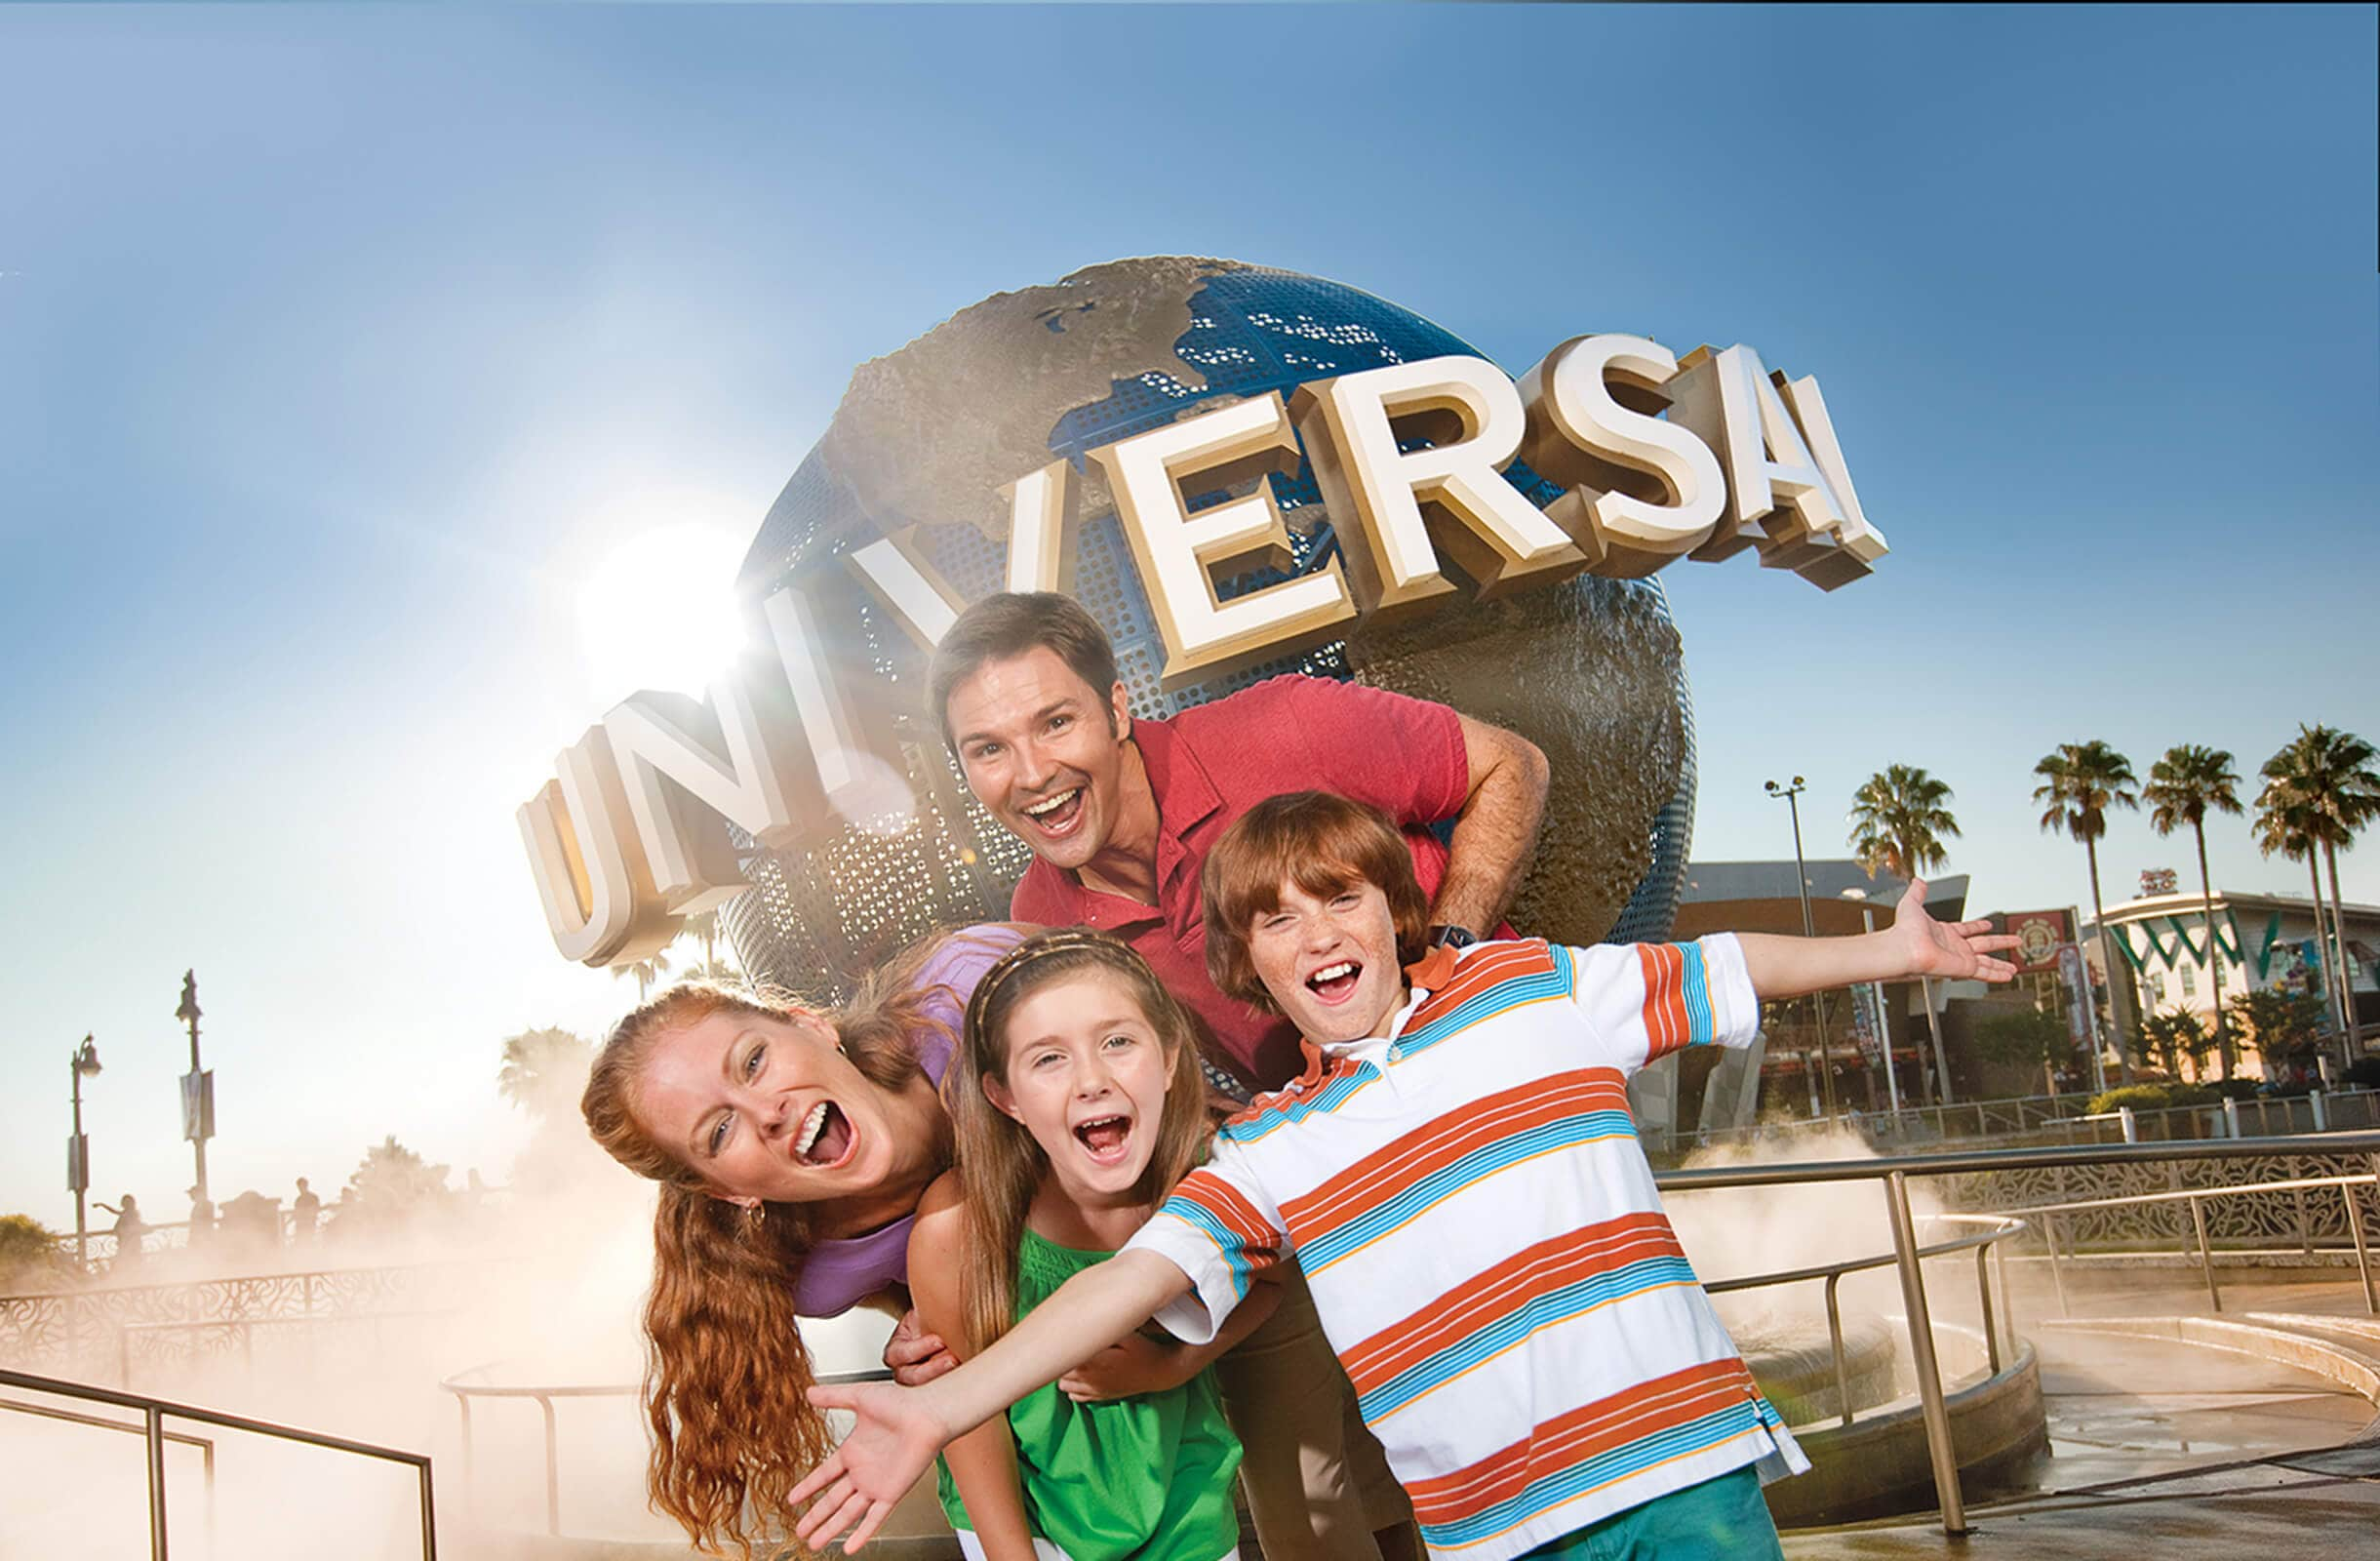 Réduction de 5 % avec Universal Orlando Resort